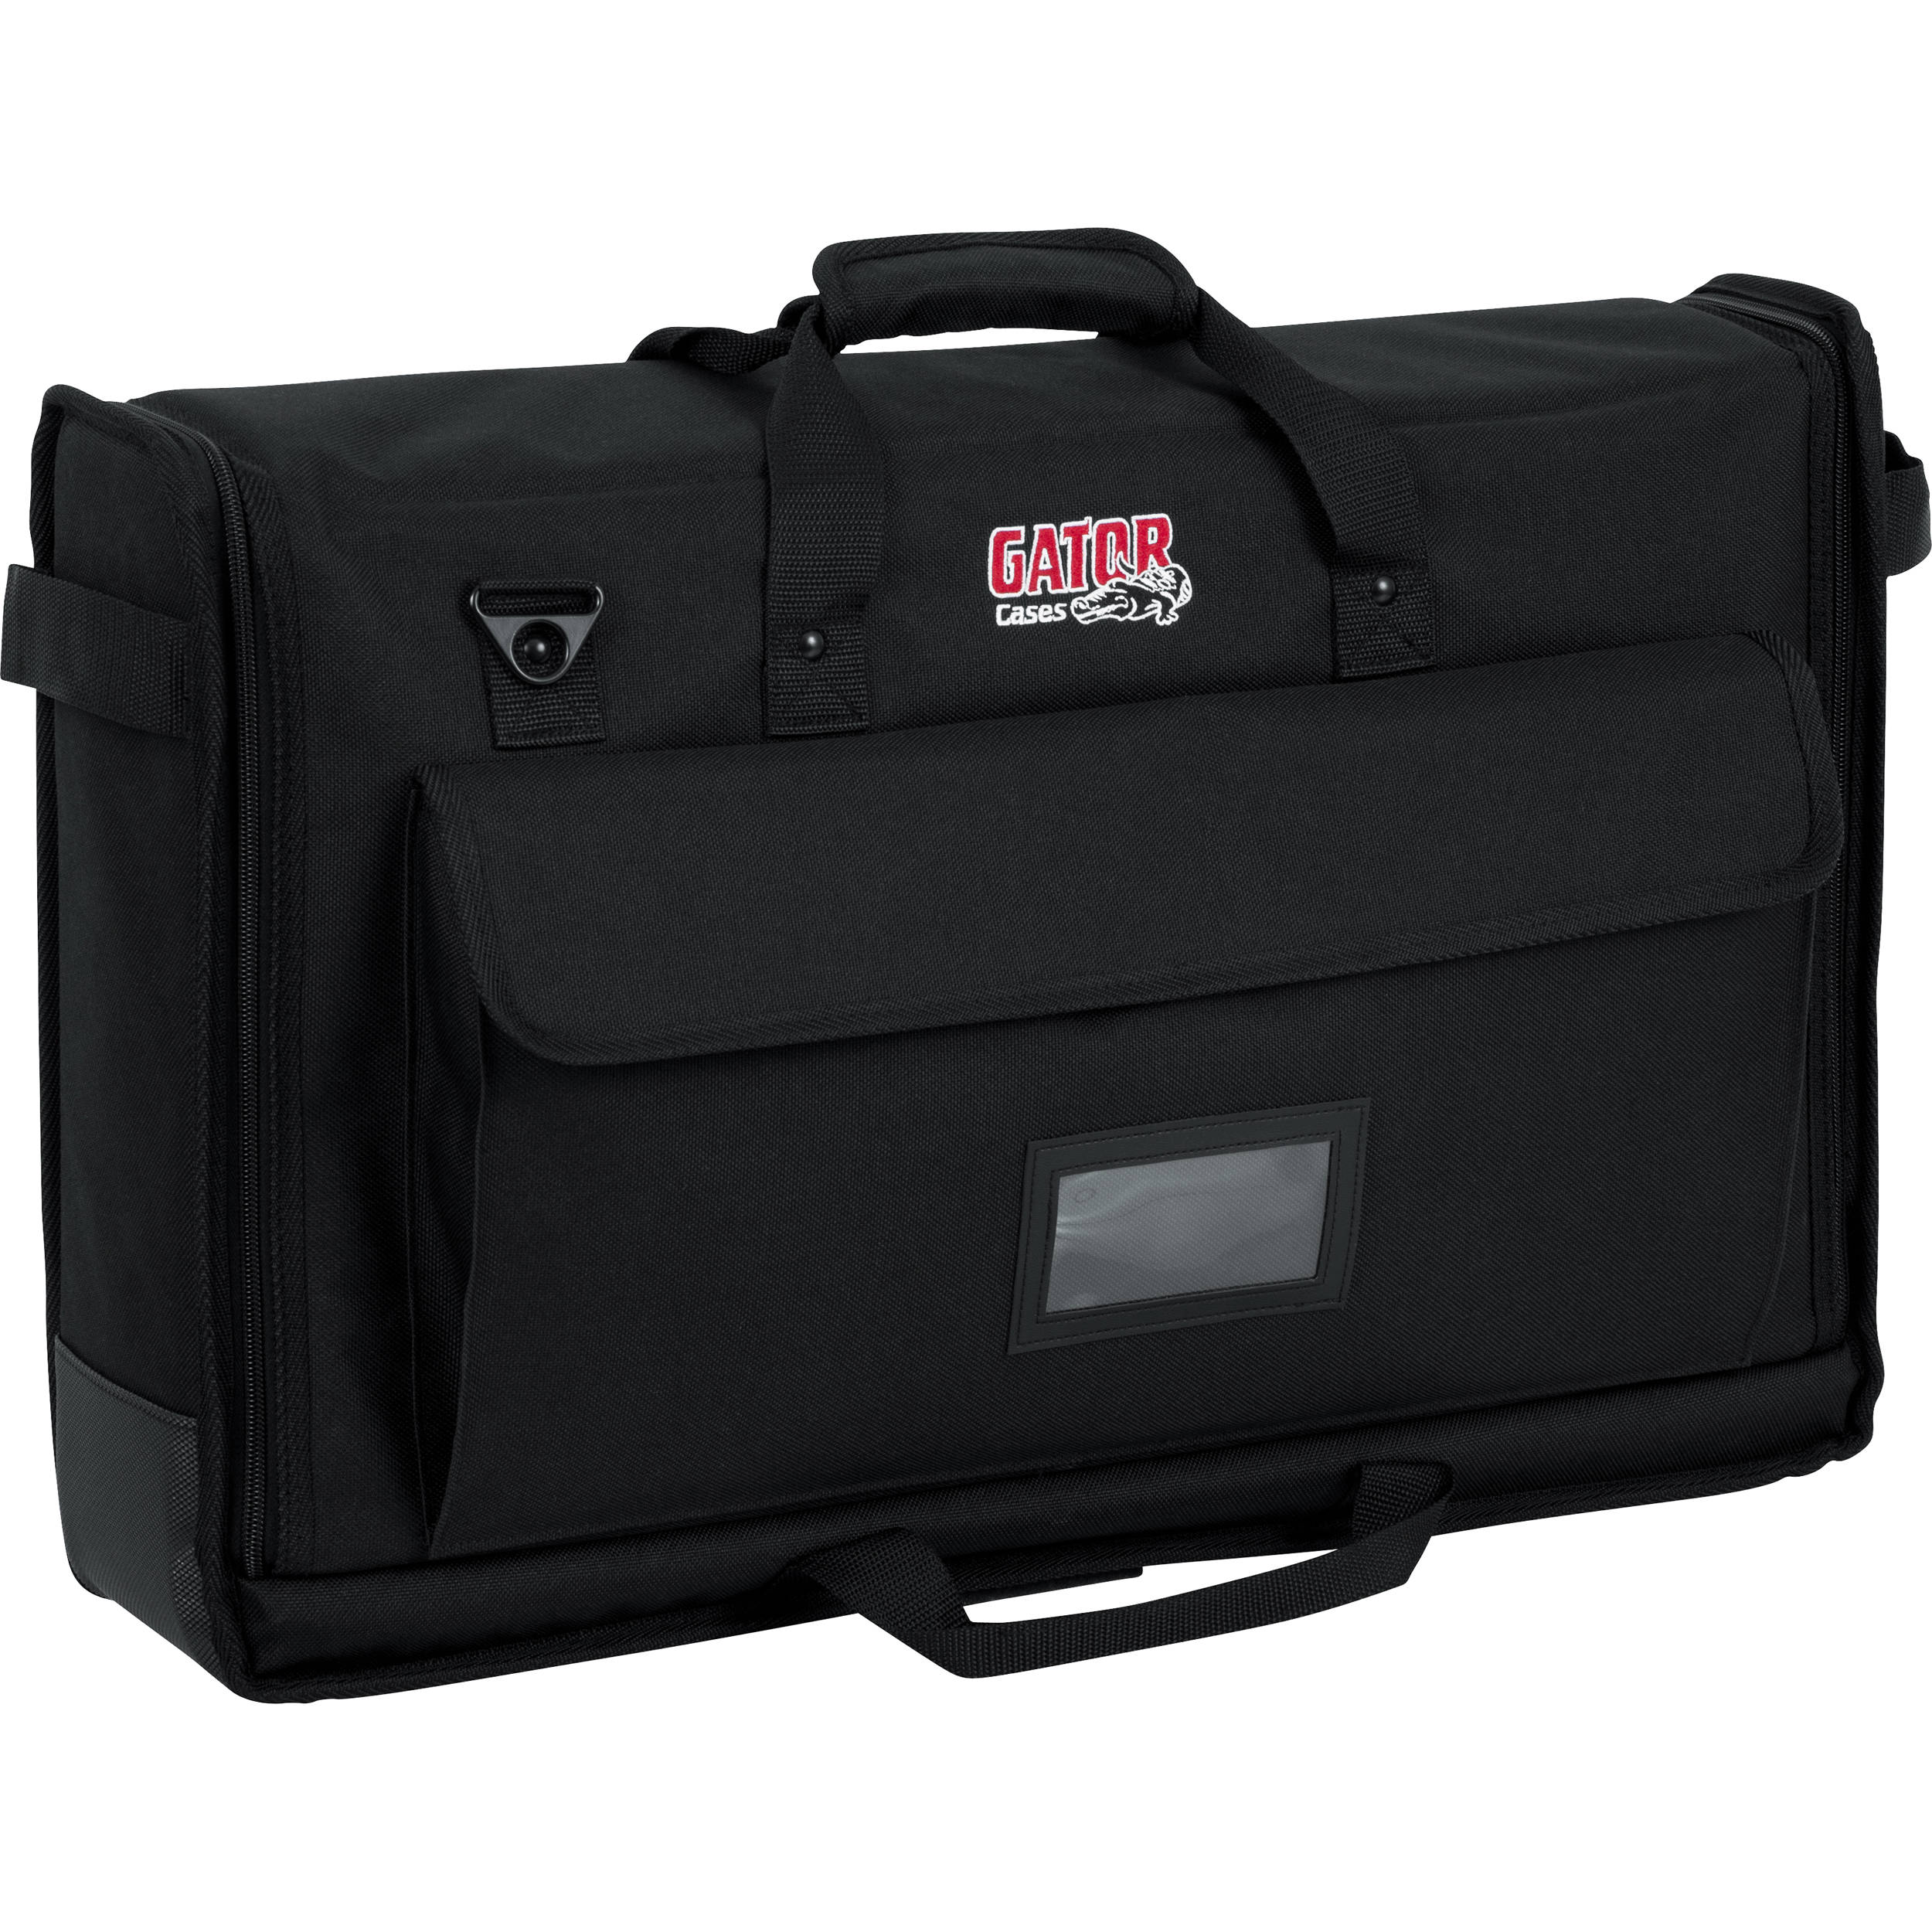 Gator Cases Padded Nylon Carry Tote Bag for Transporting LCD Screens 19-24 Inch